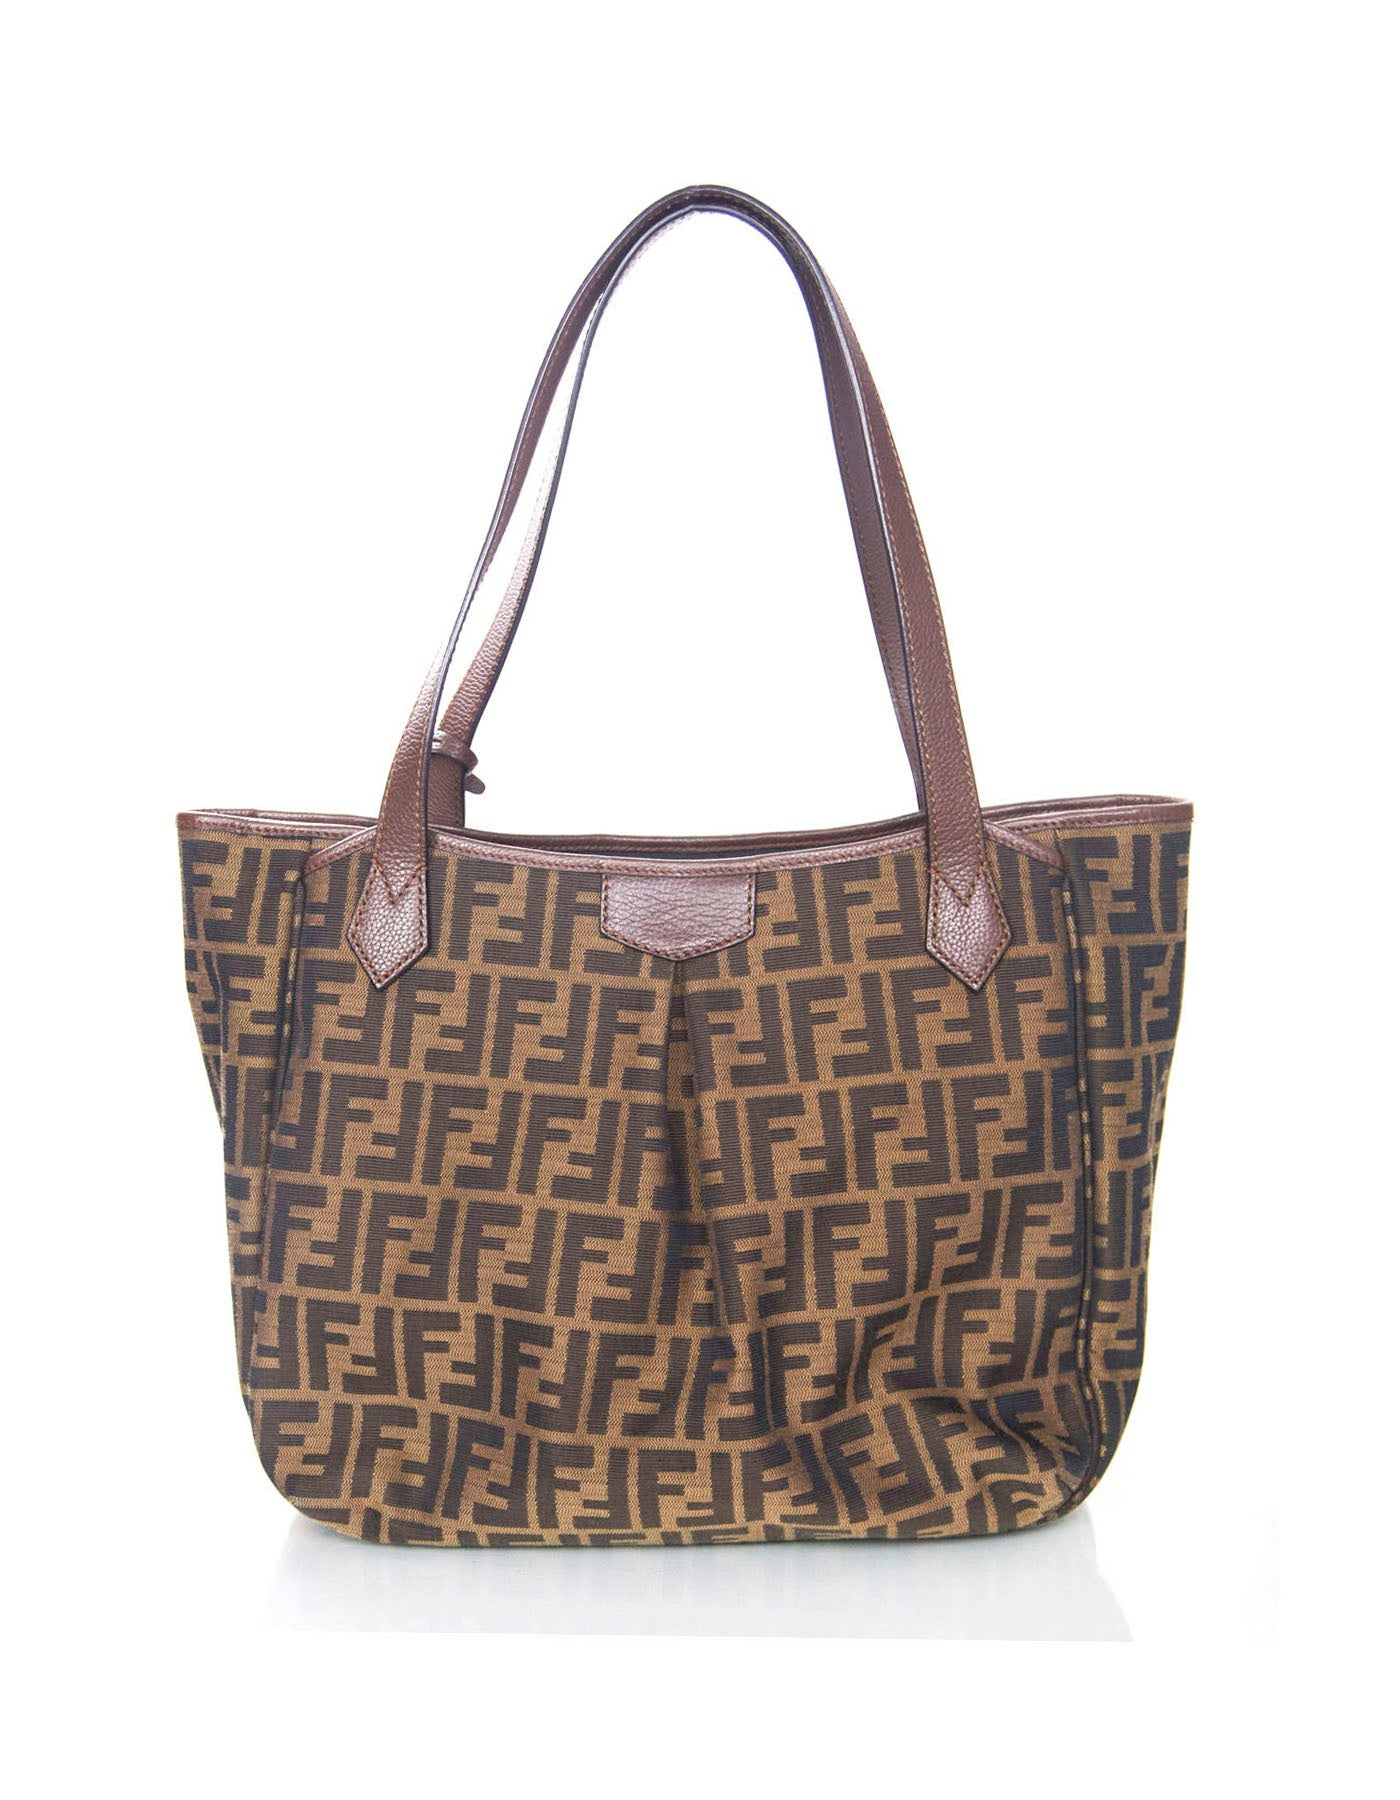 b513f01caf Fendi Canvas Zucca Print Tote Bag With Clochette And Dust Bag For Sale at  1stdibs